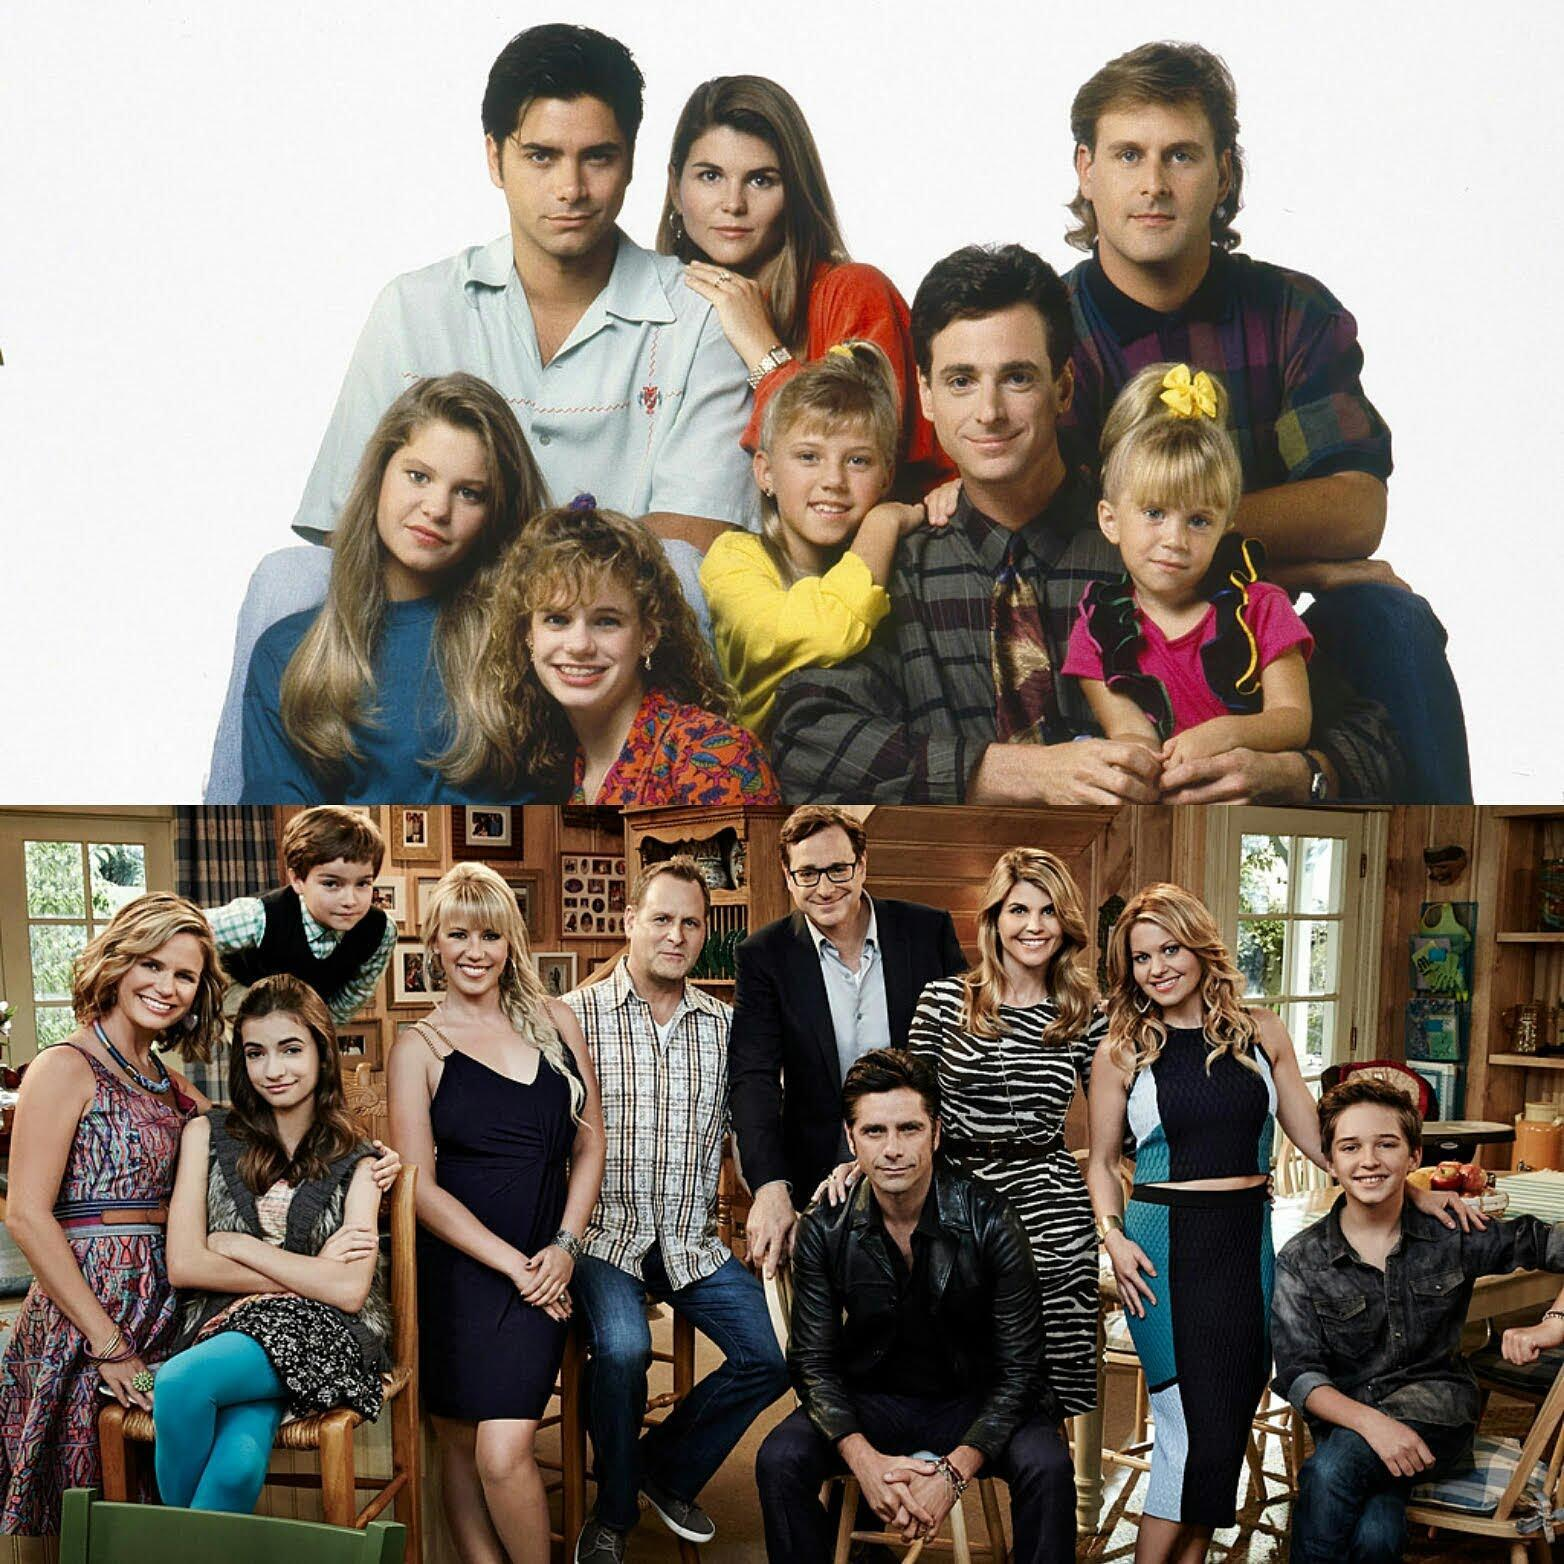 Full House or Fuller House?